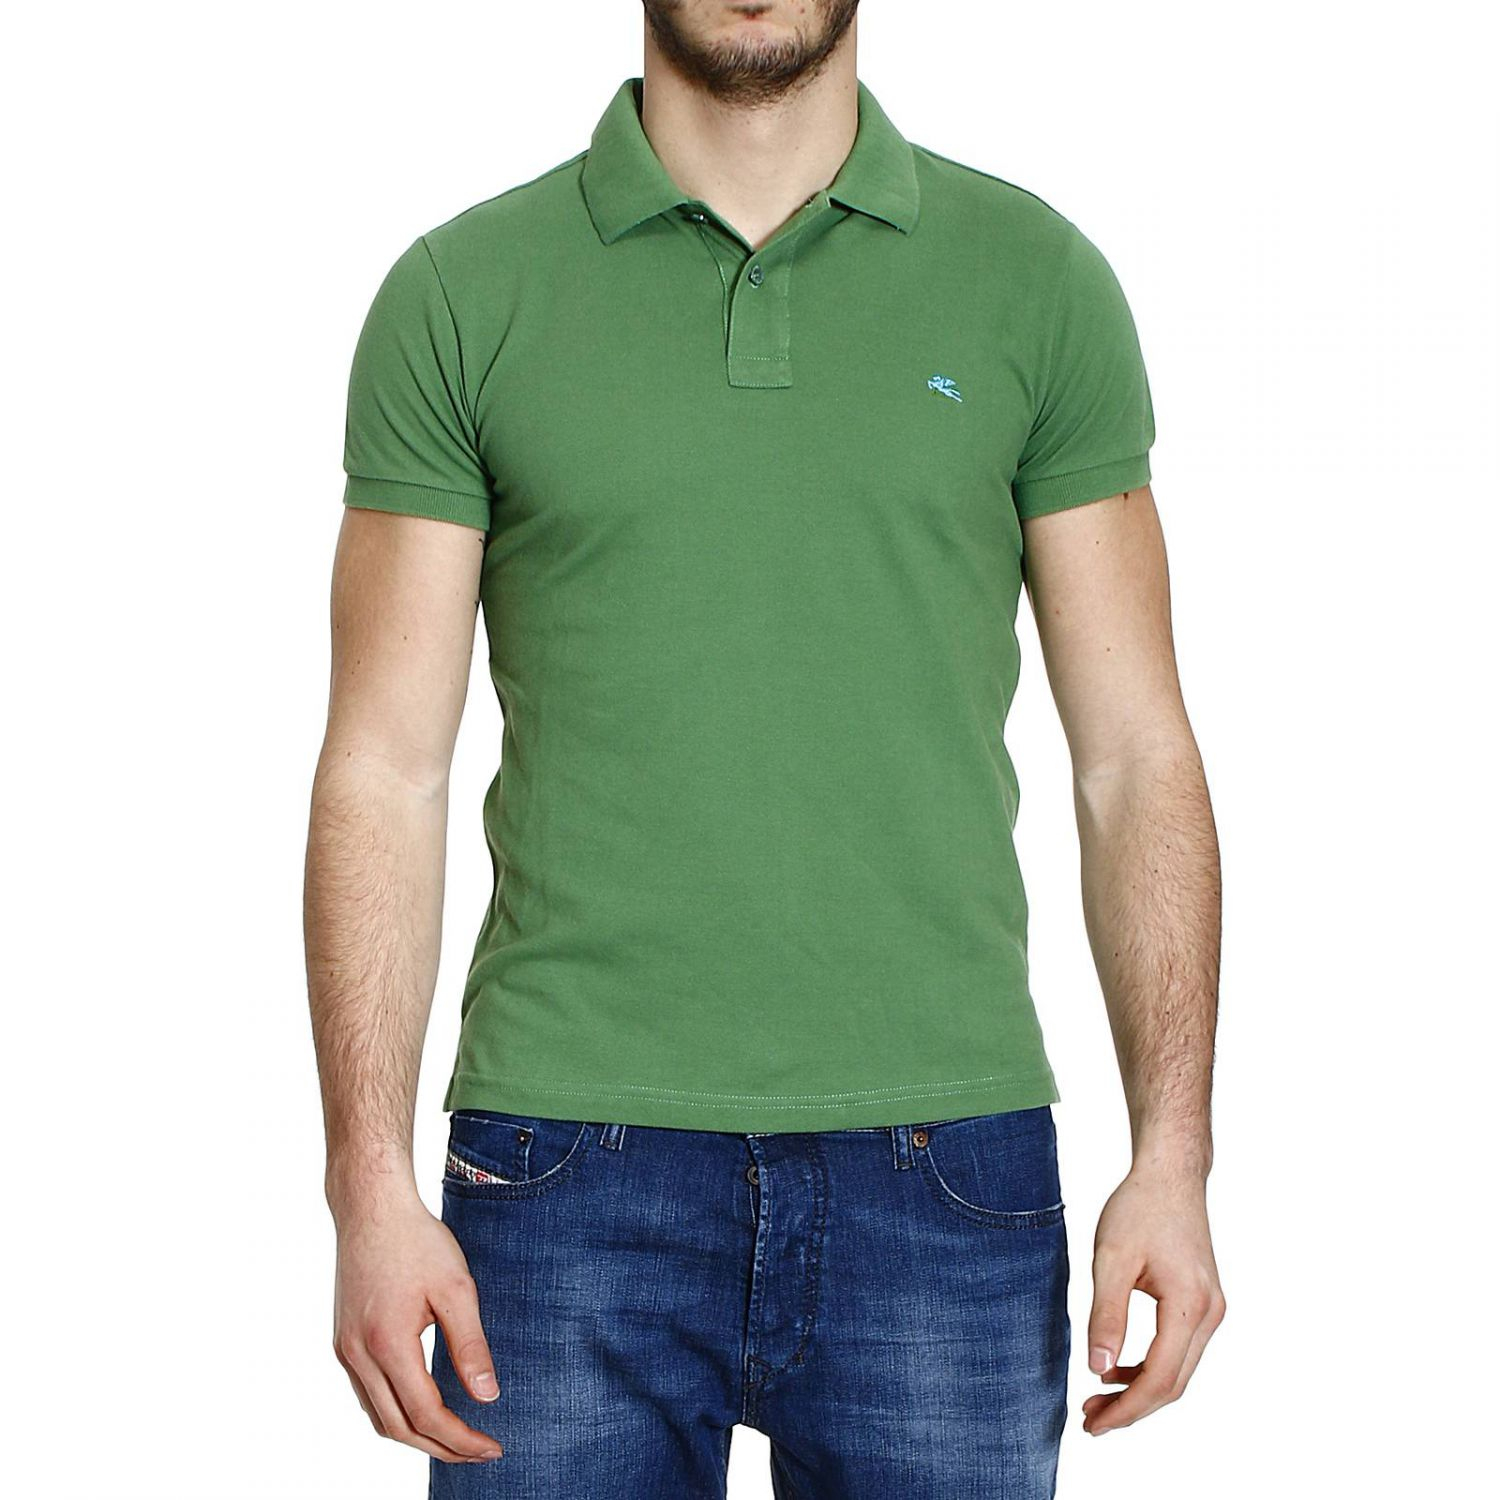 Etro t shirt polo half sleeve nido d 39 ape sotto french or for Full sleeve polo t shirts